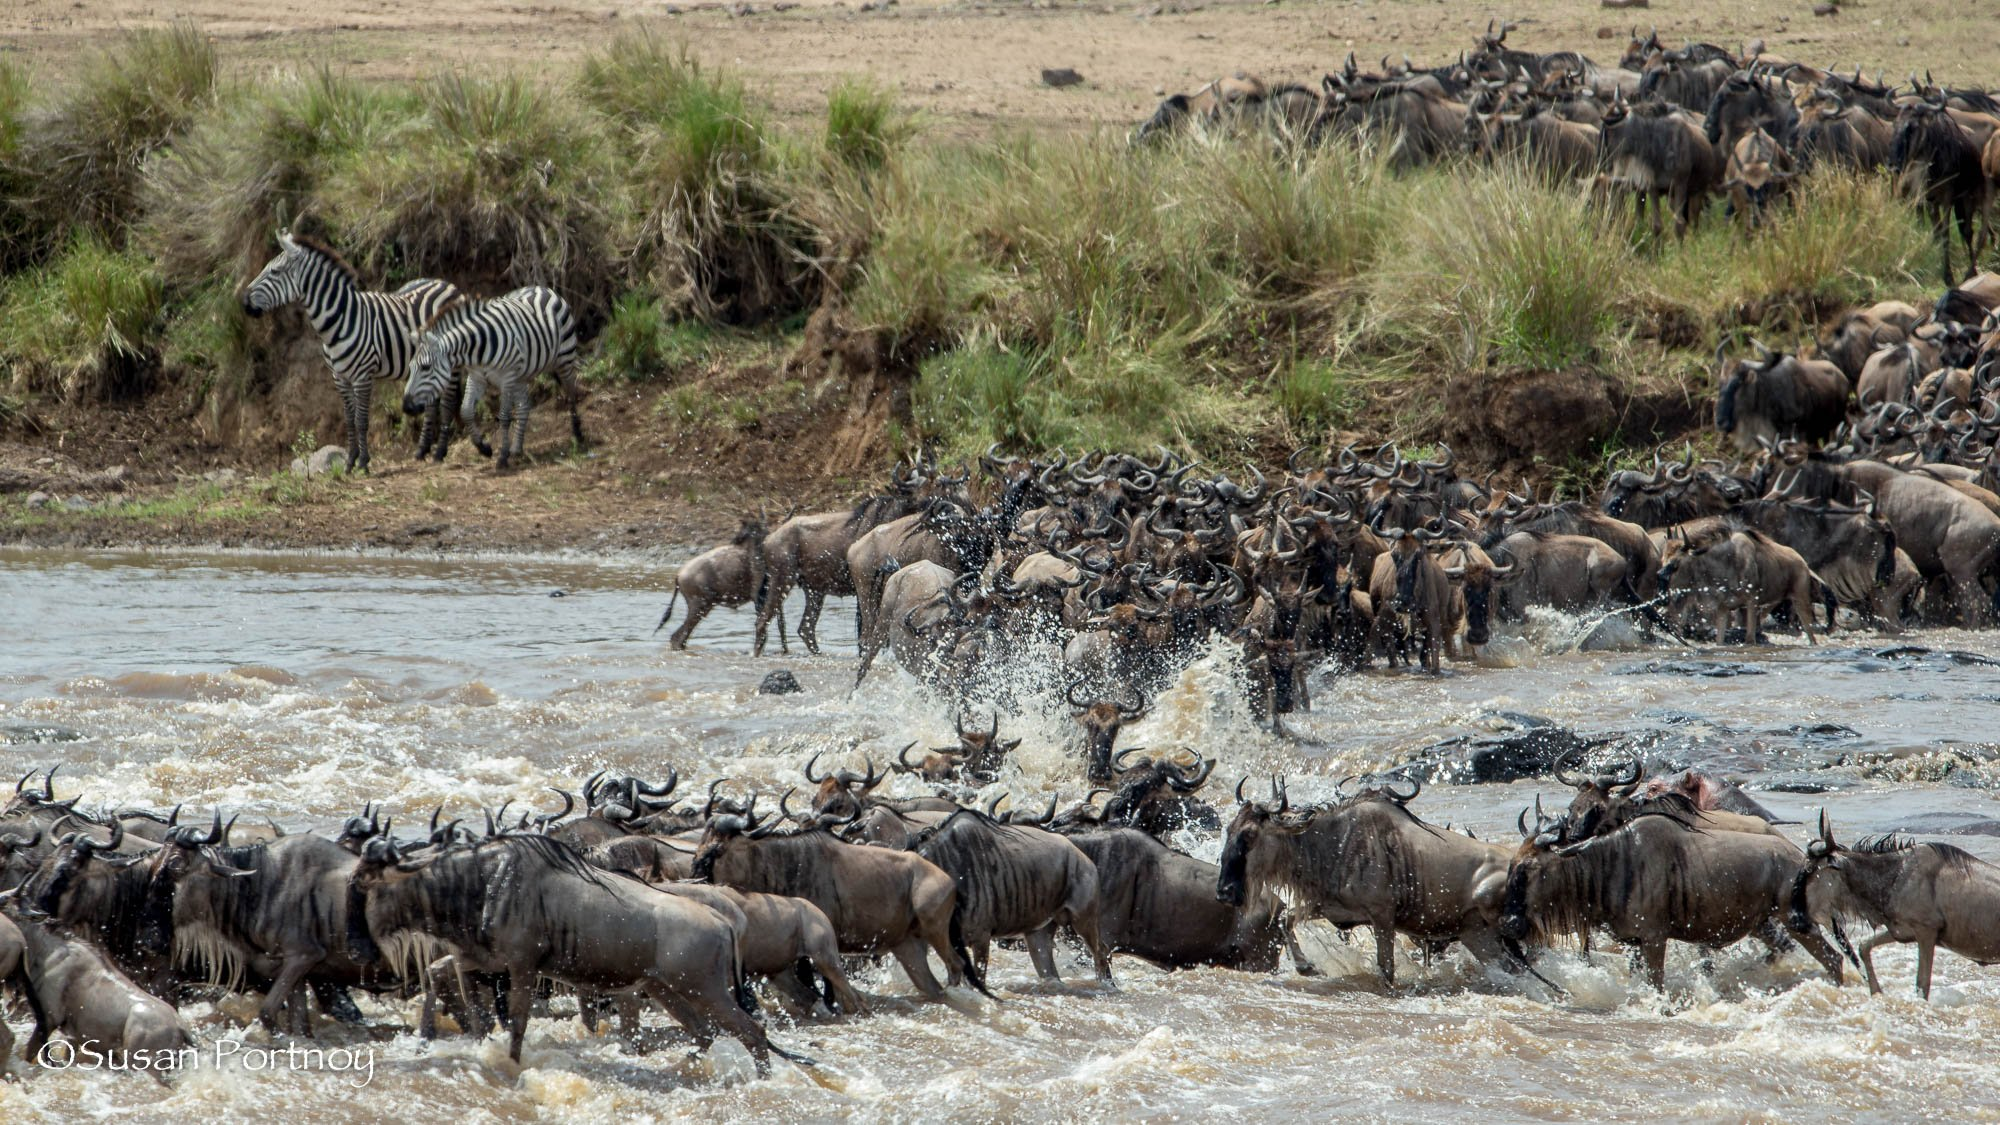 A very chaotic scene of wildebeest crossing the Mara River